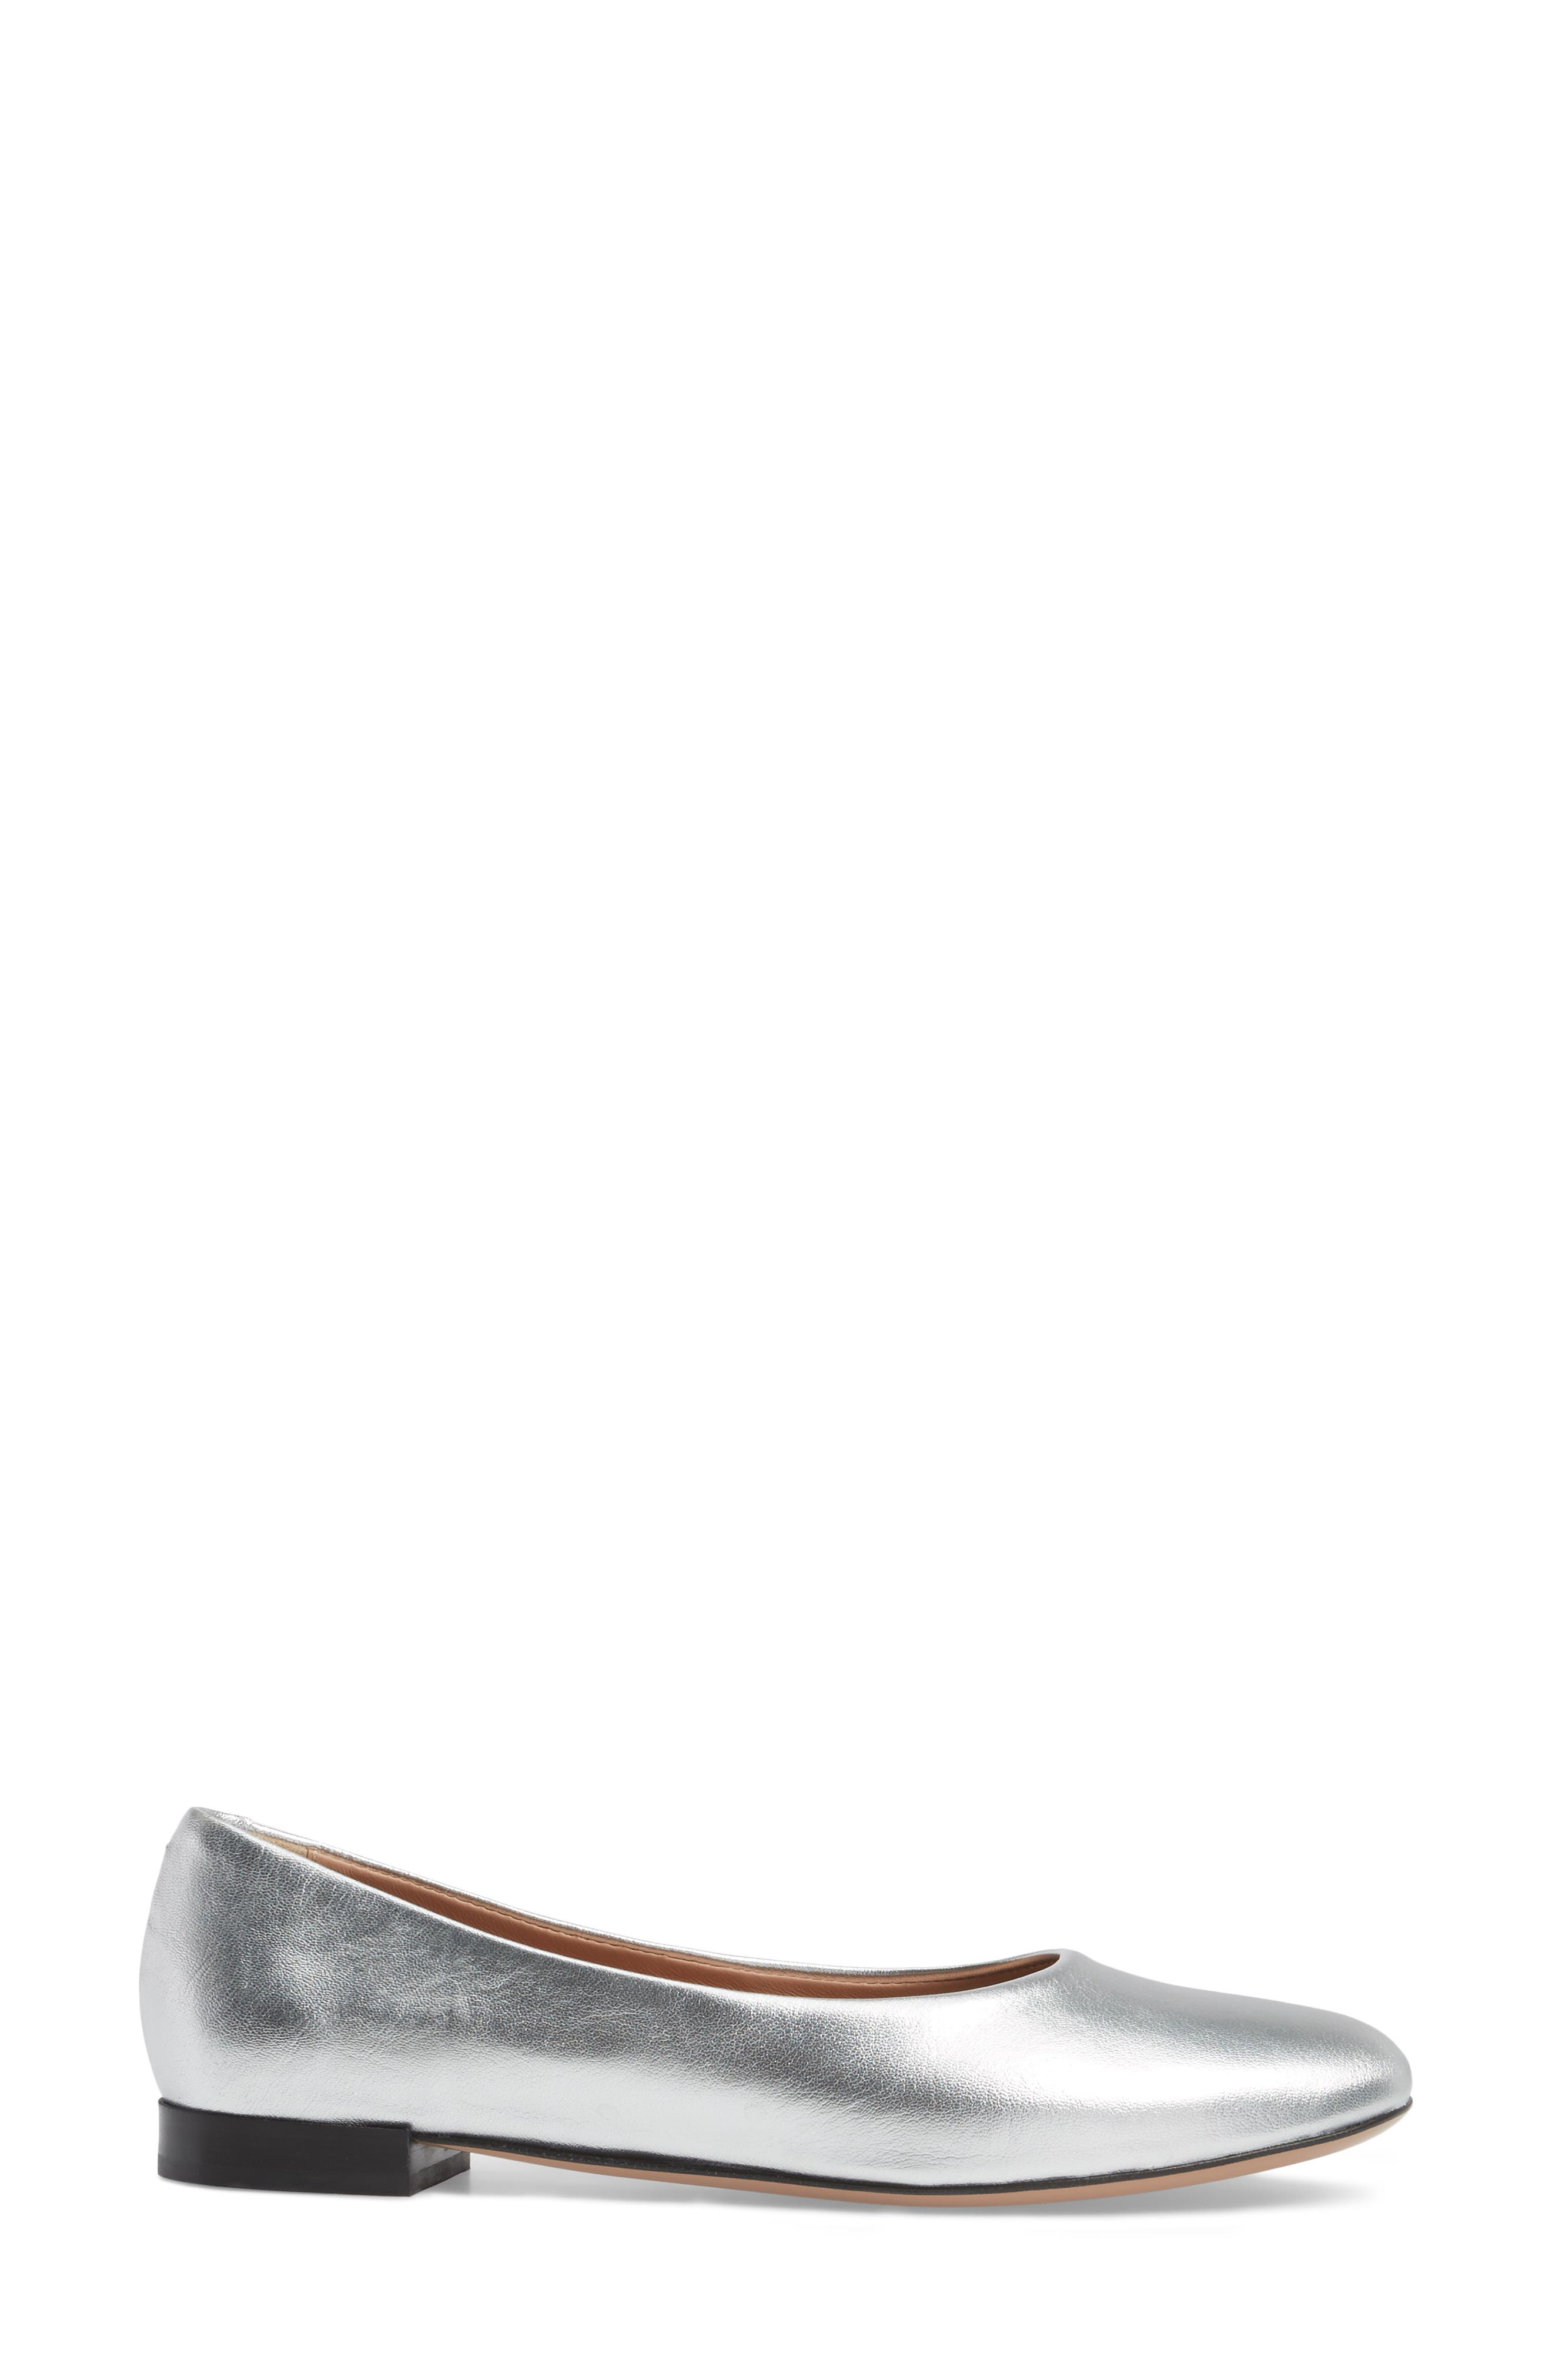 Gemma Ballerina Flat,                             Alternate thumbnail 3, color,                             Silver Leather